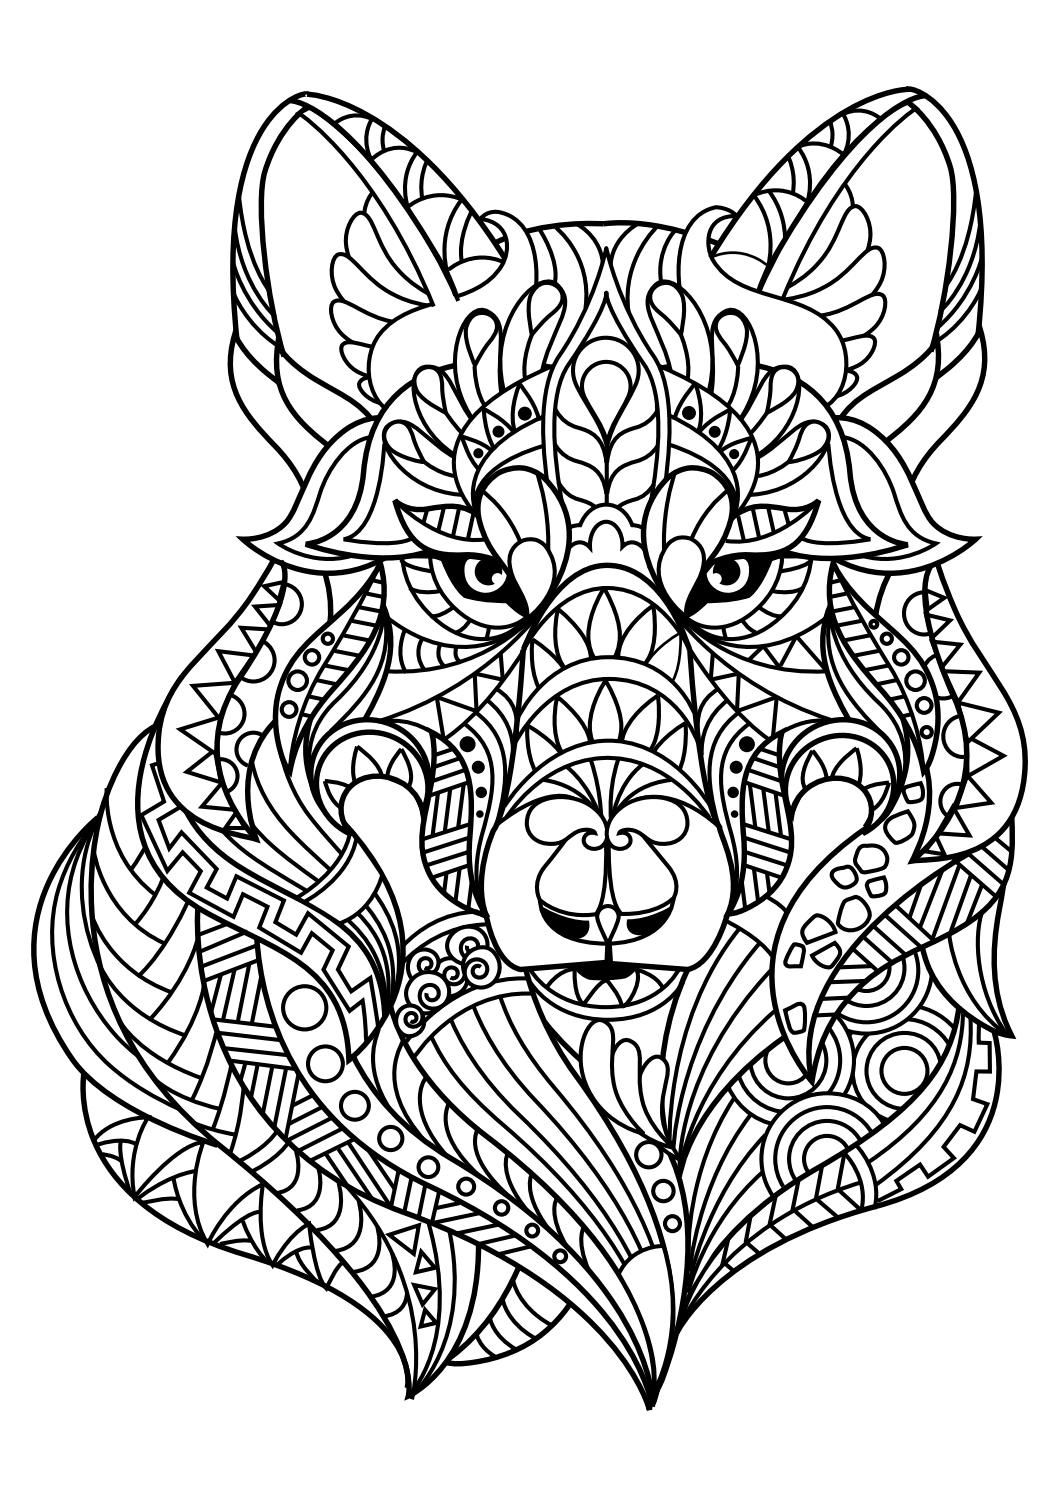 coloring pages pdf # 2